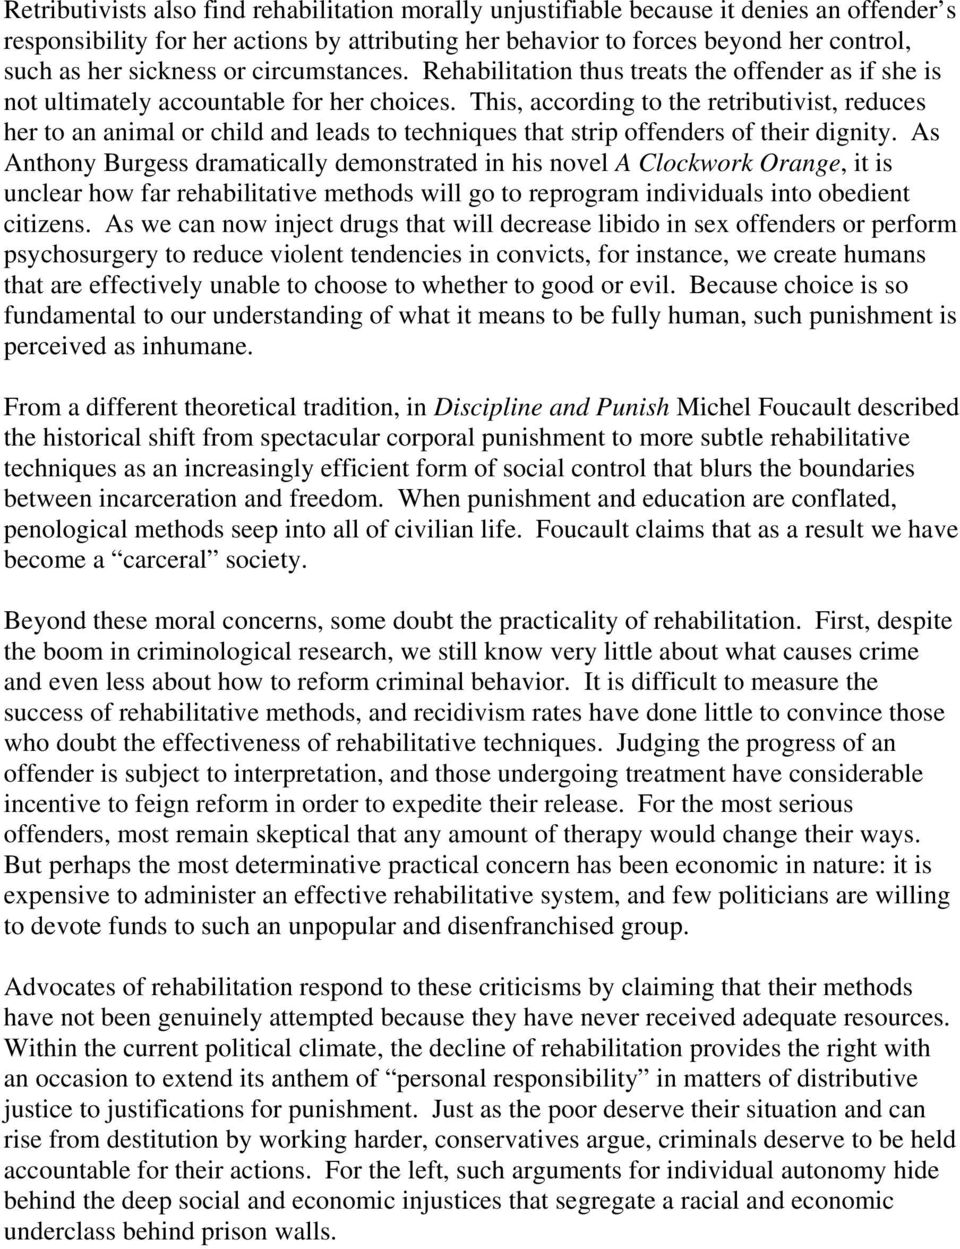 an essay on corporal punishment and its effectiveness Corporal punishment why corporal punishment is an corporal punishment essay of spanking and does not really touch on the effectiveness of the punishment.